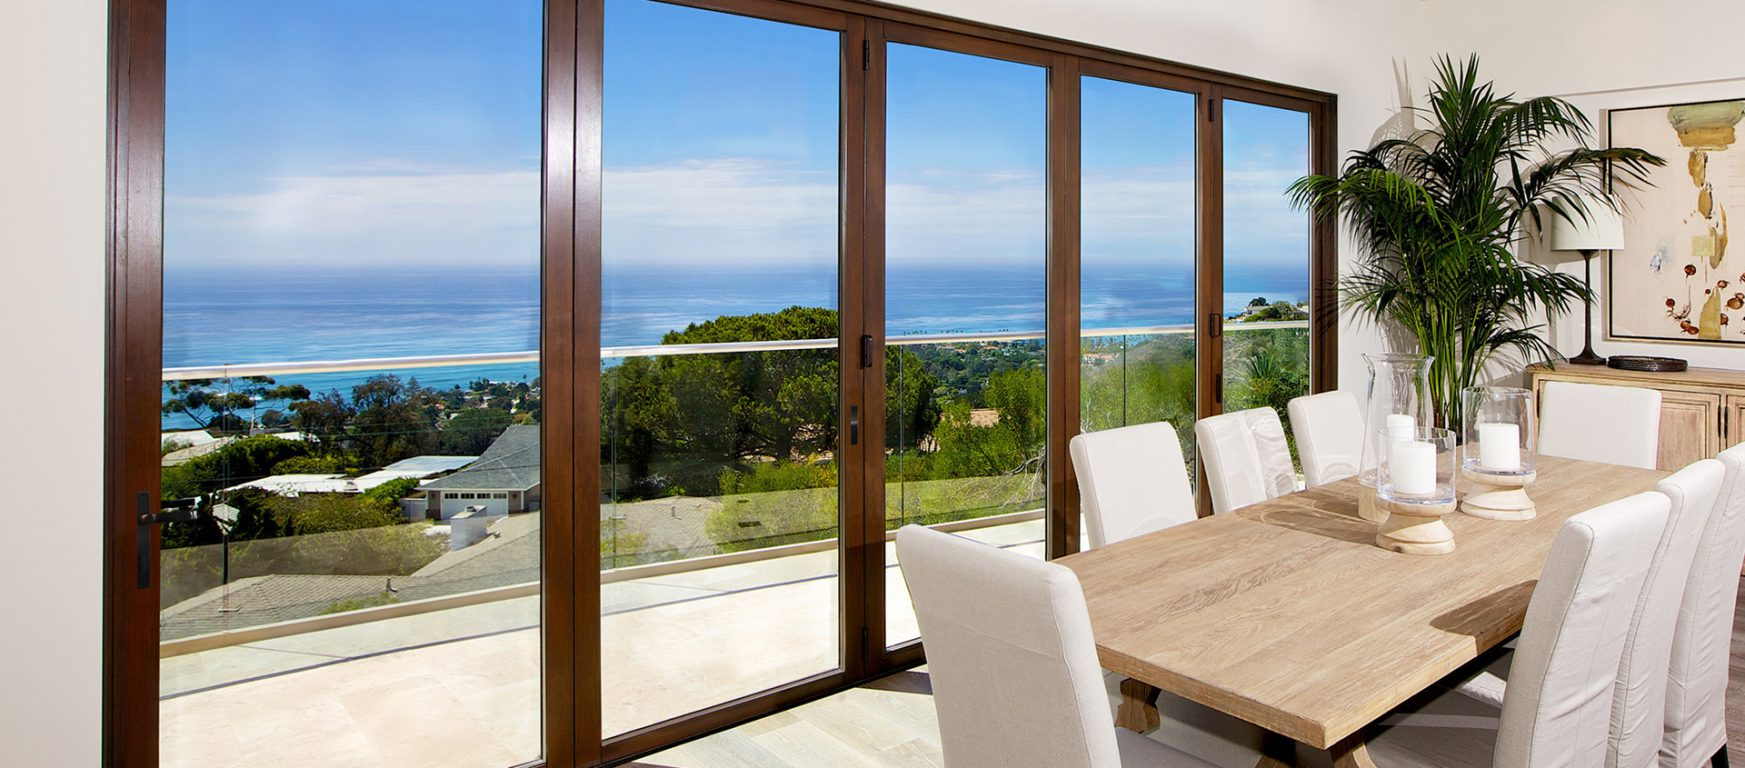 LaCantina Clad folding glass doors